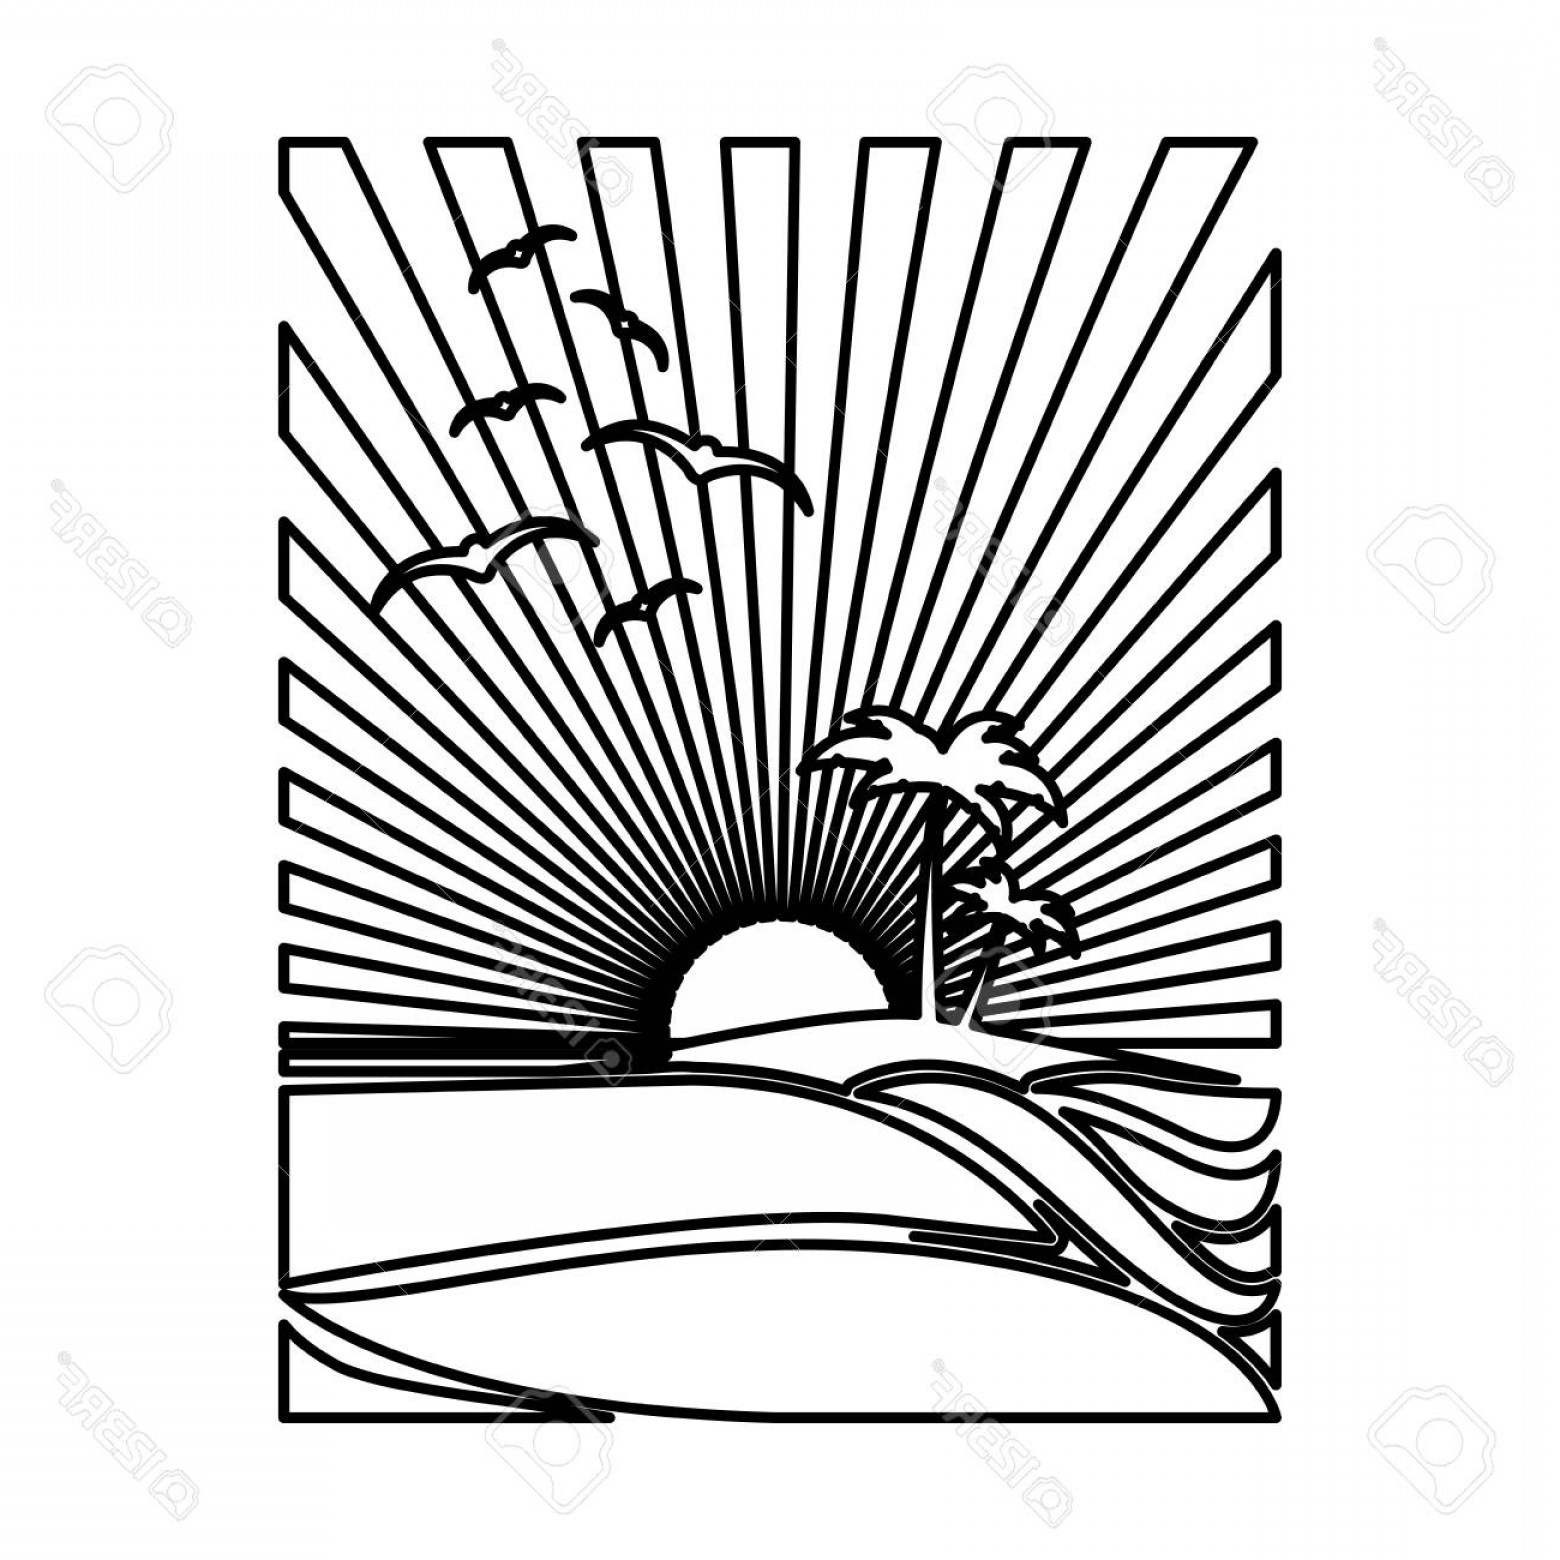 Sunset Black And White Backgrounds Vector: Photostock Vector Silhouette Rectangular Background Sunset In The Beach With Palms And Gulls Vector Illustration